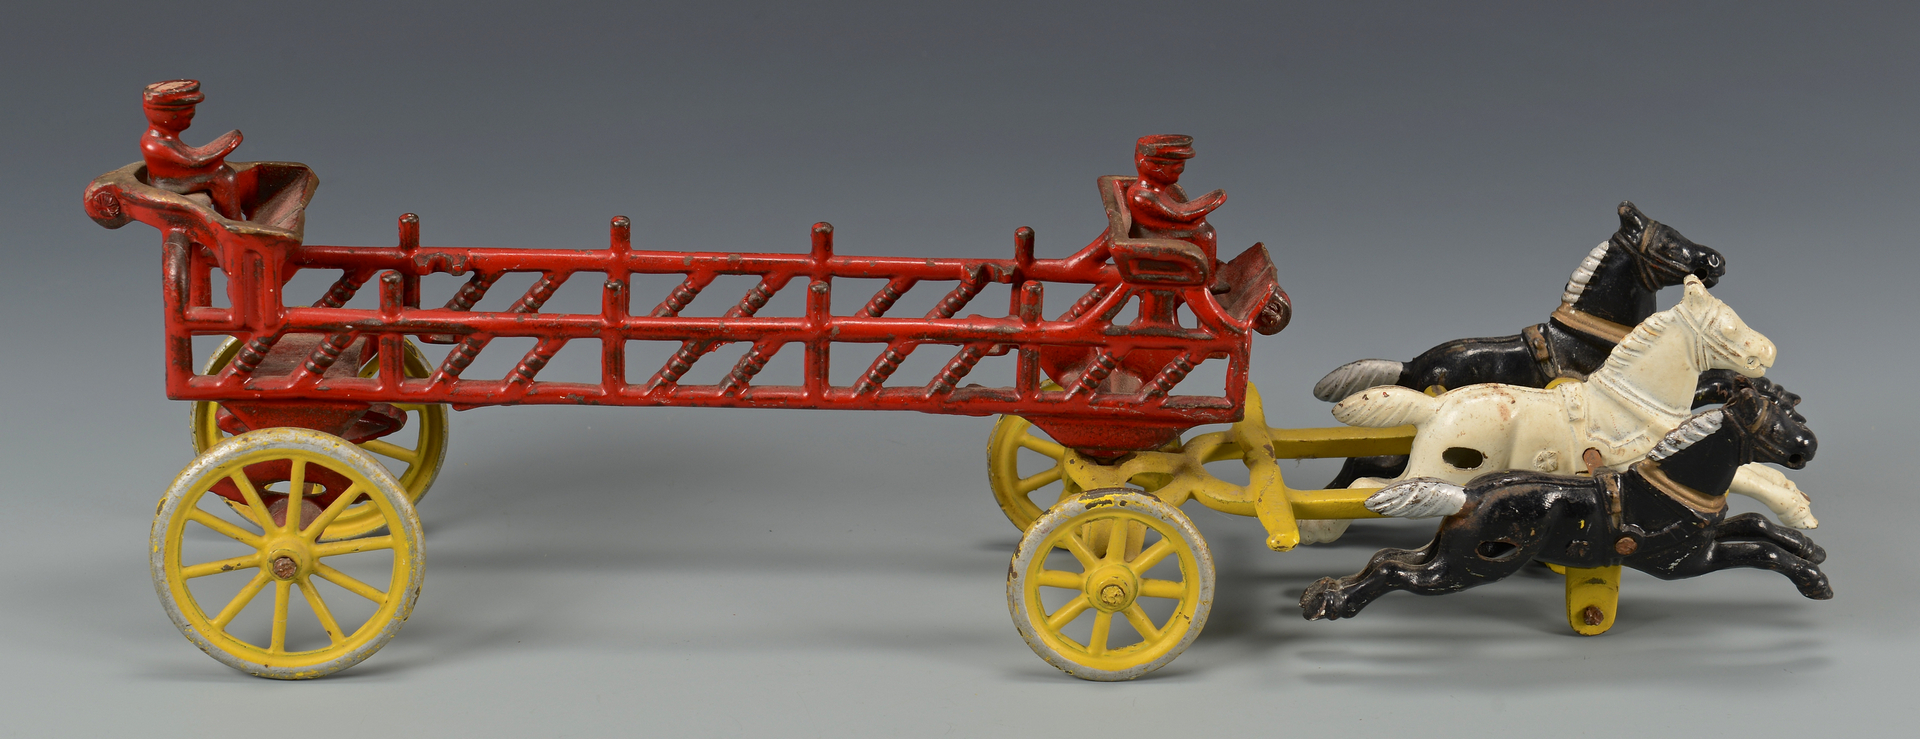 Lot 457: Cast Iron & Sheet Tin Fire Engine Wagons & Other